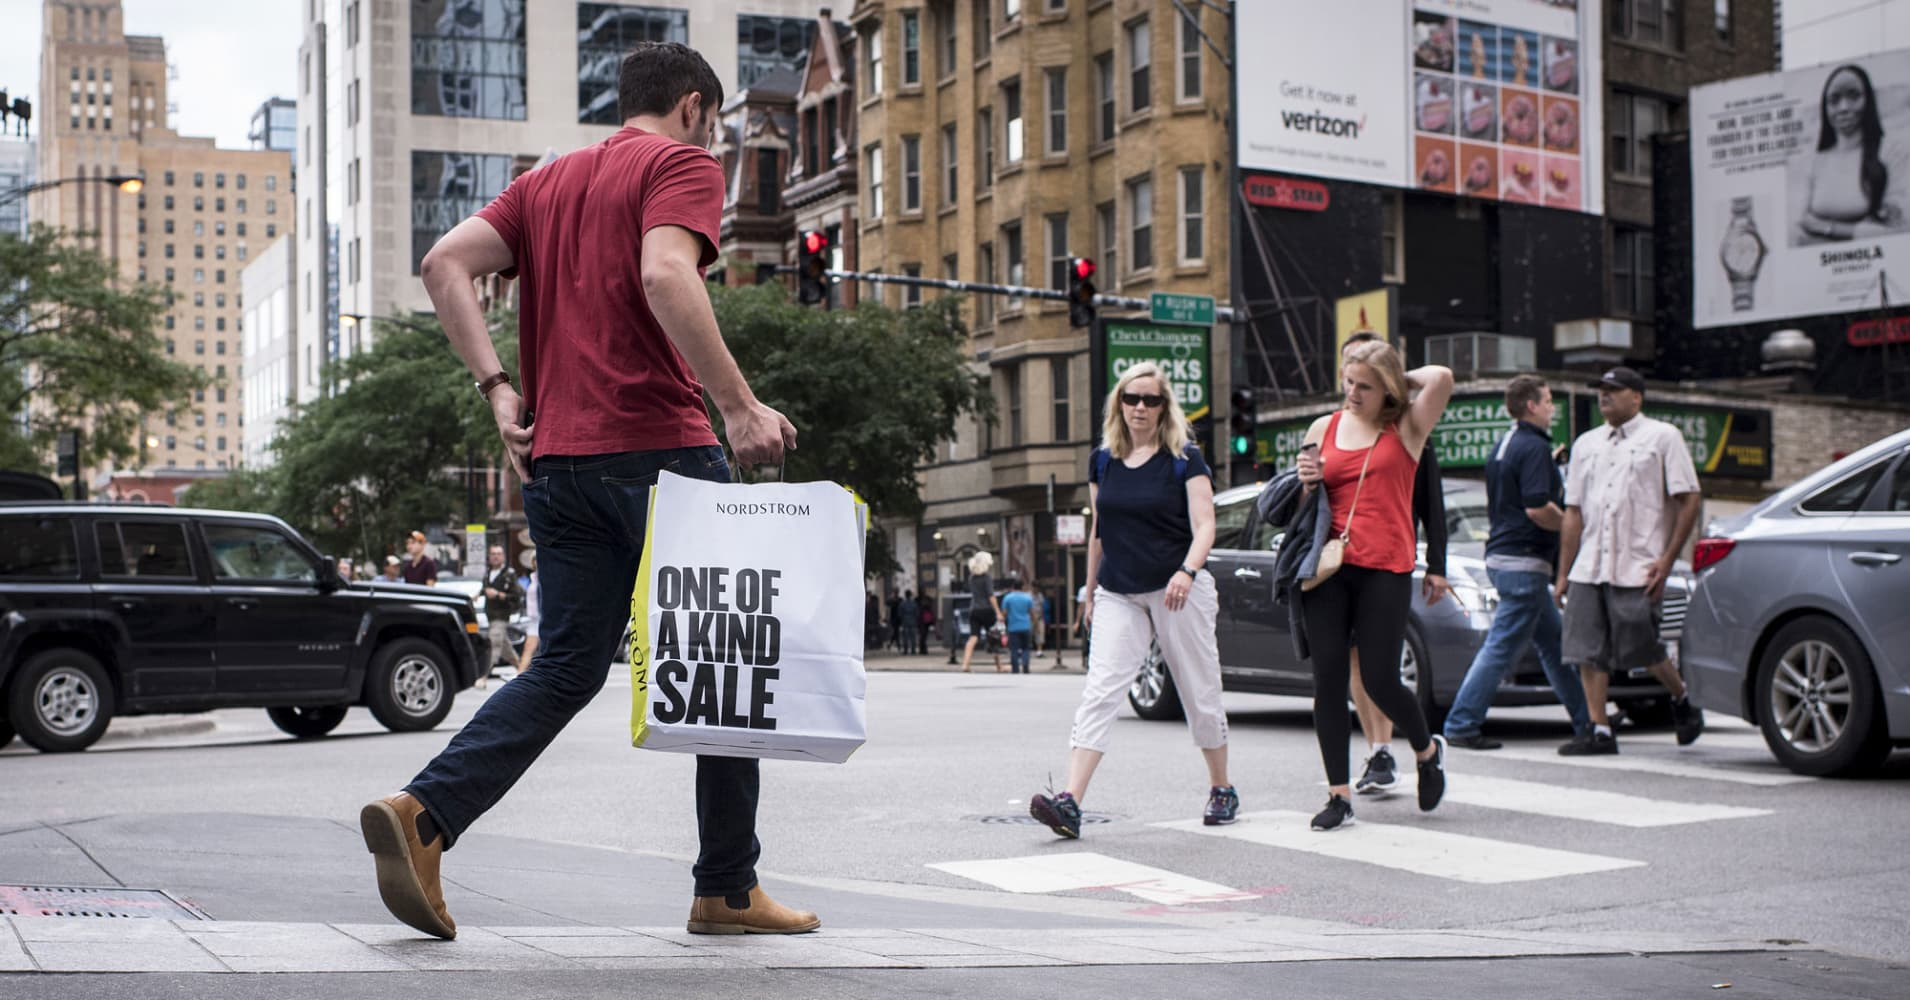 A shopper carries a Nordstrom bag while crossing a street in downtown Chicago.